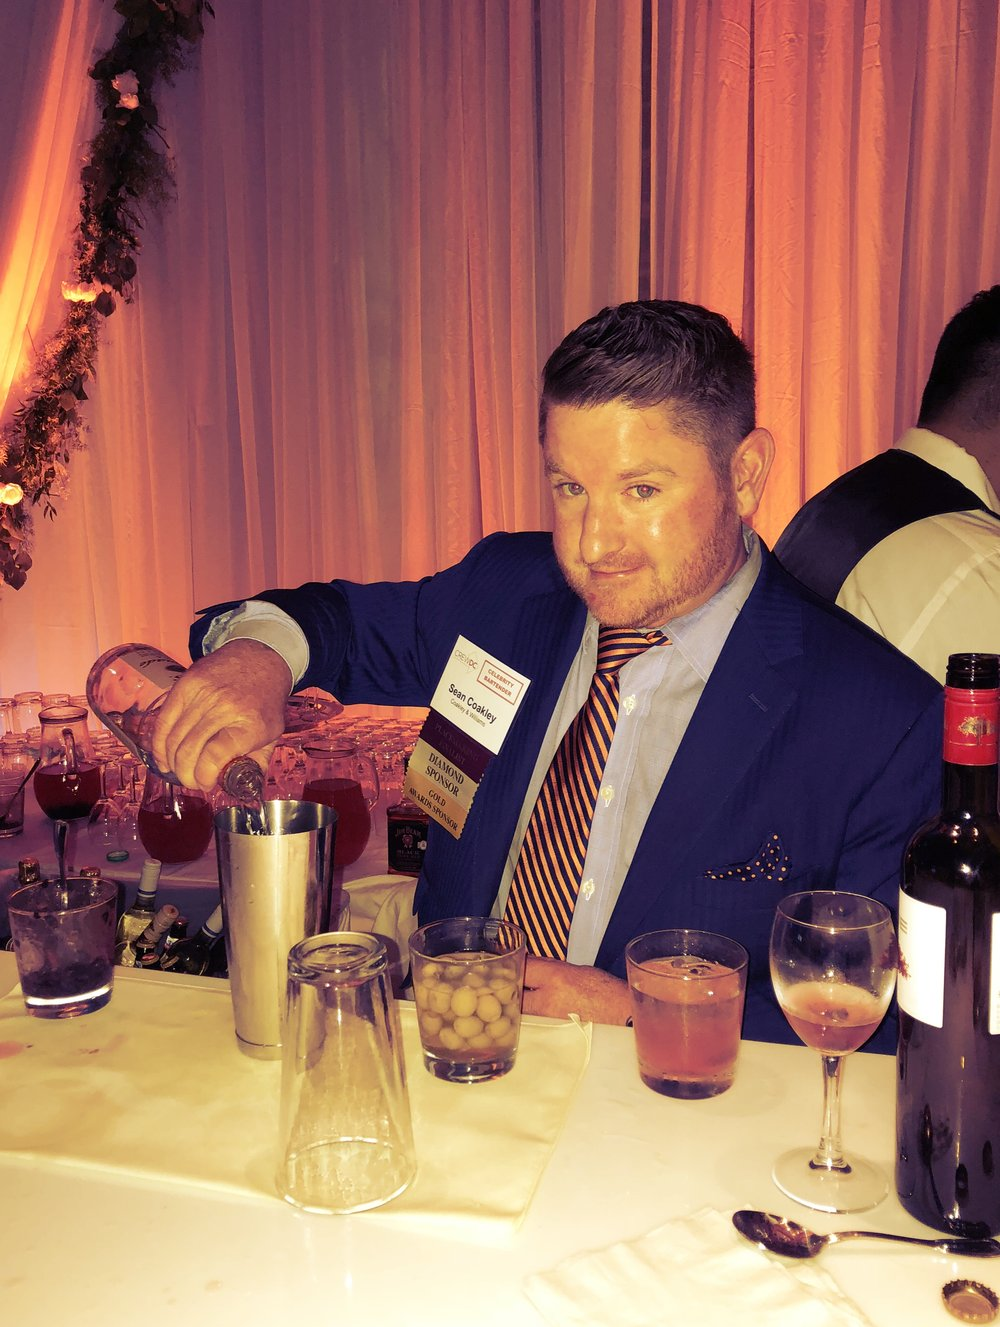 Coakley & Williams Construction's Senior Vice President, Sean Coakley, mixed cocktails as one of the evening's celebrity bartenders